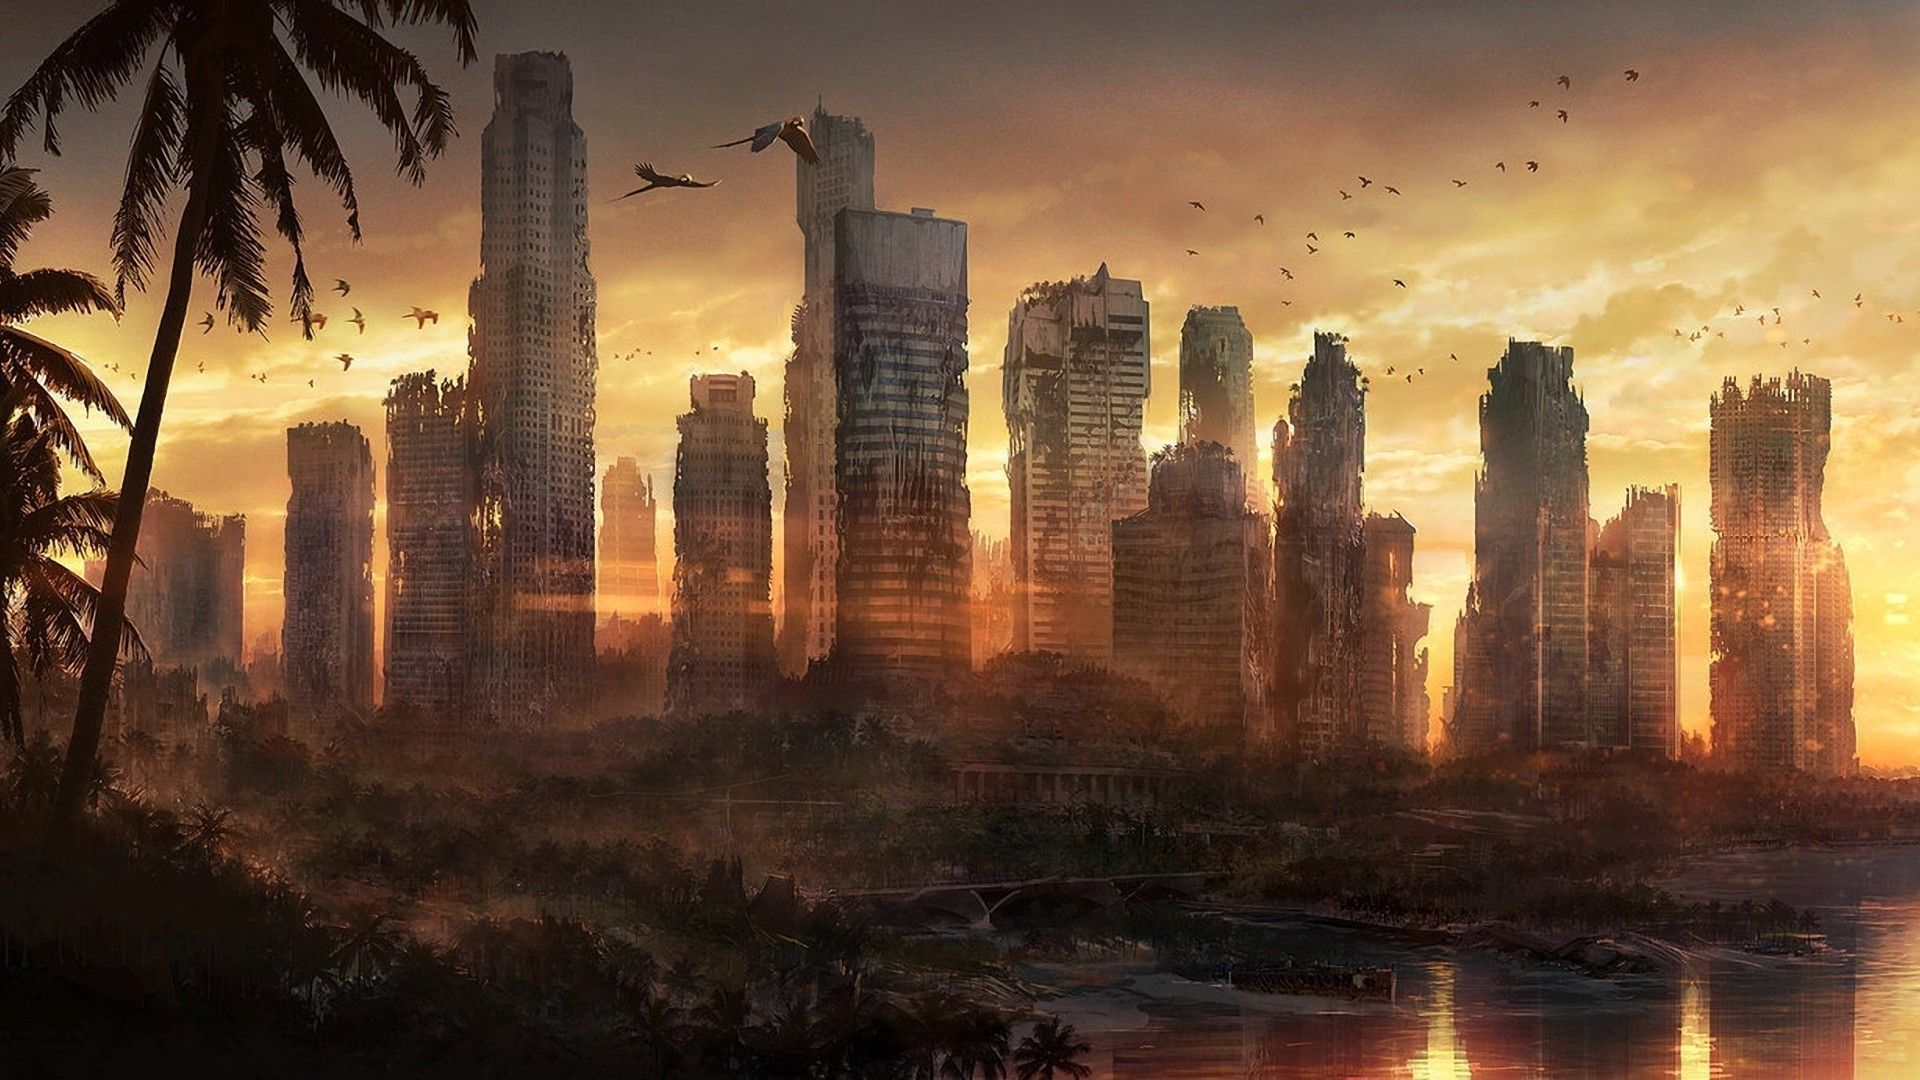 apocalyptic hd wallpaper 2560x1440 - photo #39